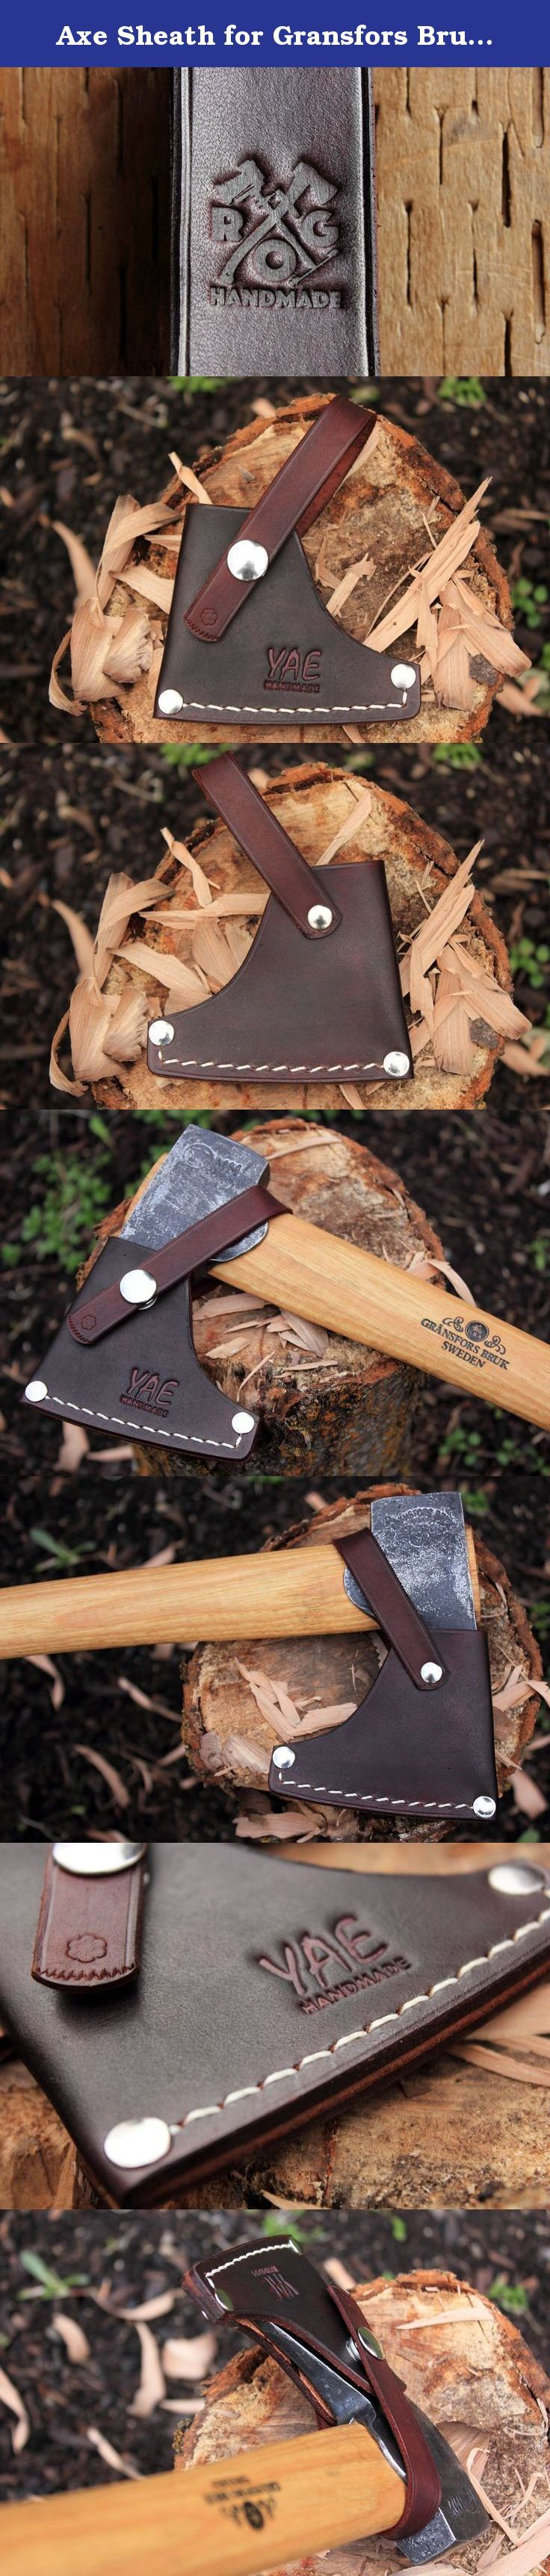 Axe Sheath for Gransfors Bruks Wildlife Hatchet (Brown). This sheath is designed specifically and exactly for the Gransfors Bruks (or Bruk) Wildlife Hatchet. It is made out of full-grain vegetable-tanned cowhide. You can leave it this way, or you can treat it with an oil/product of your choice. The sheath is handmade in Spokane, Washington. The construction of the sheath starts with three pieces of leather: the main body of the sheath, the securing strap and the welt. The main body is…